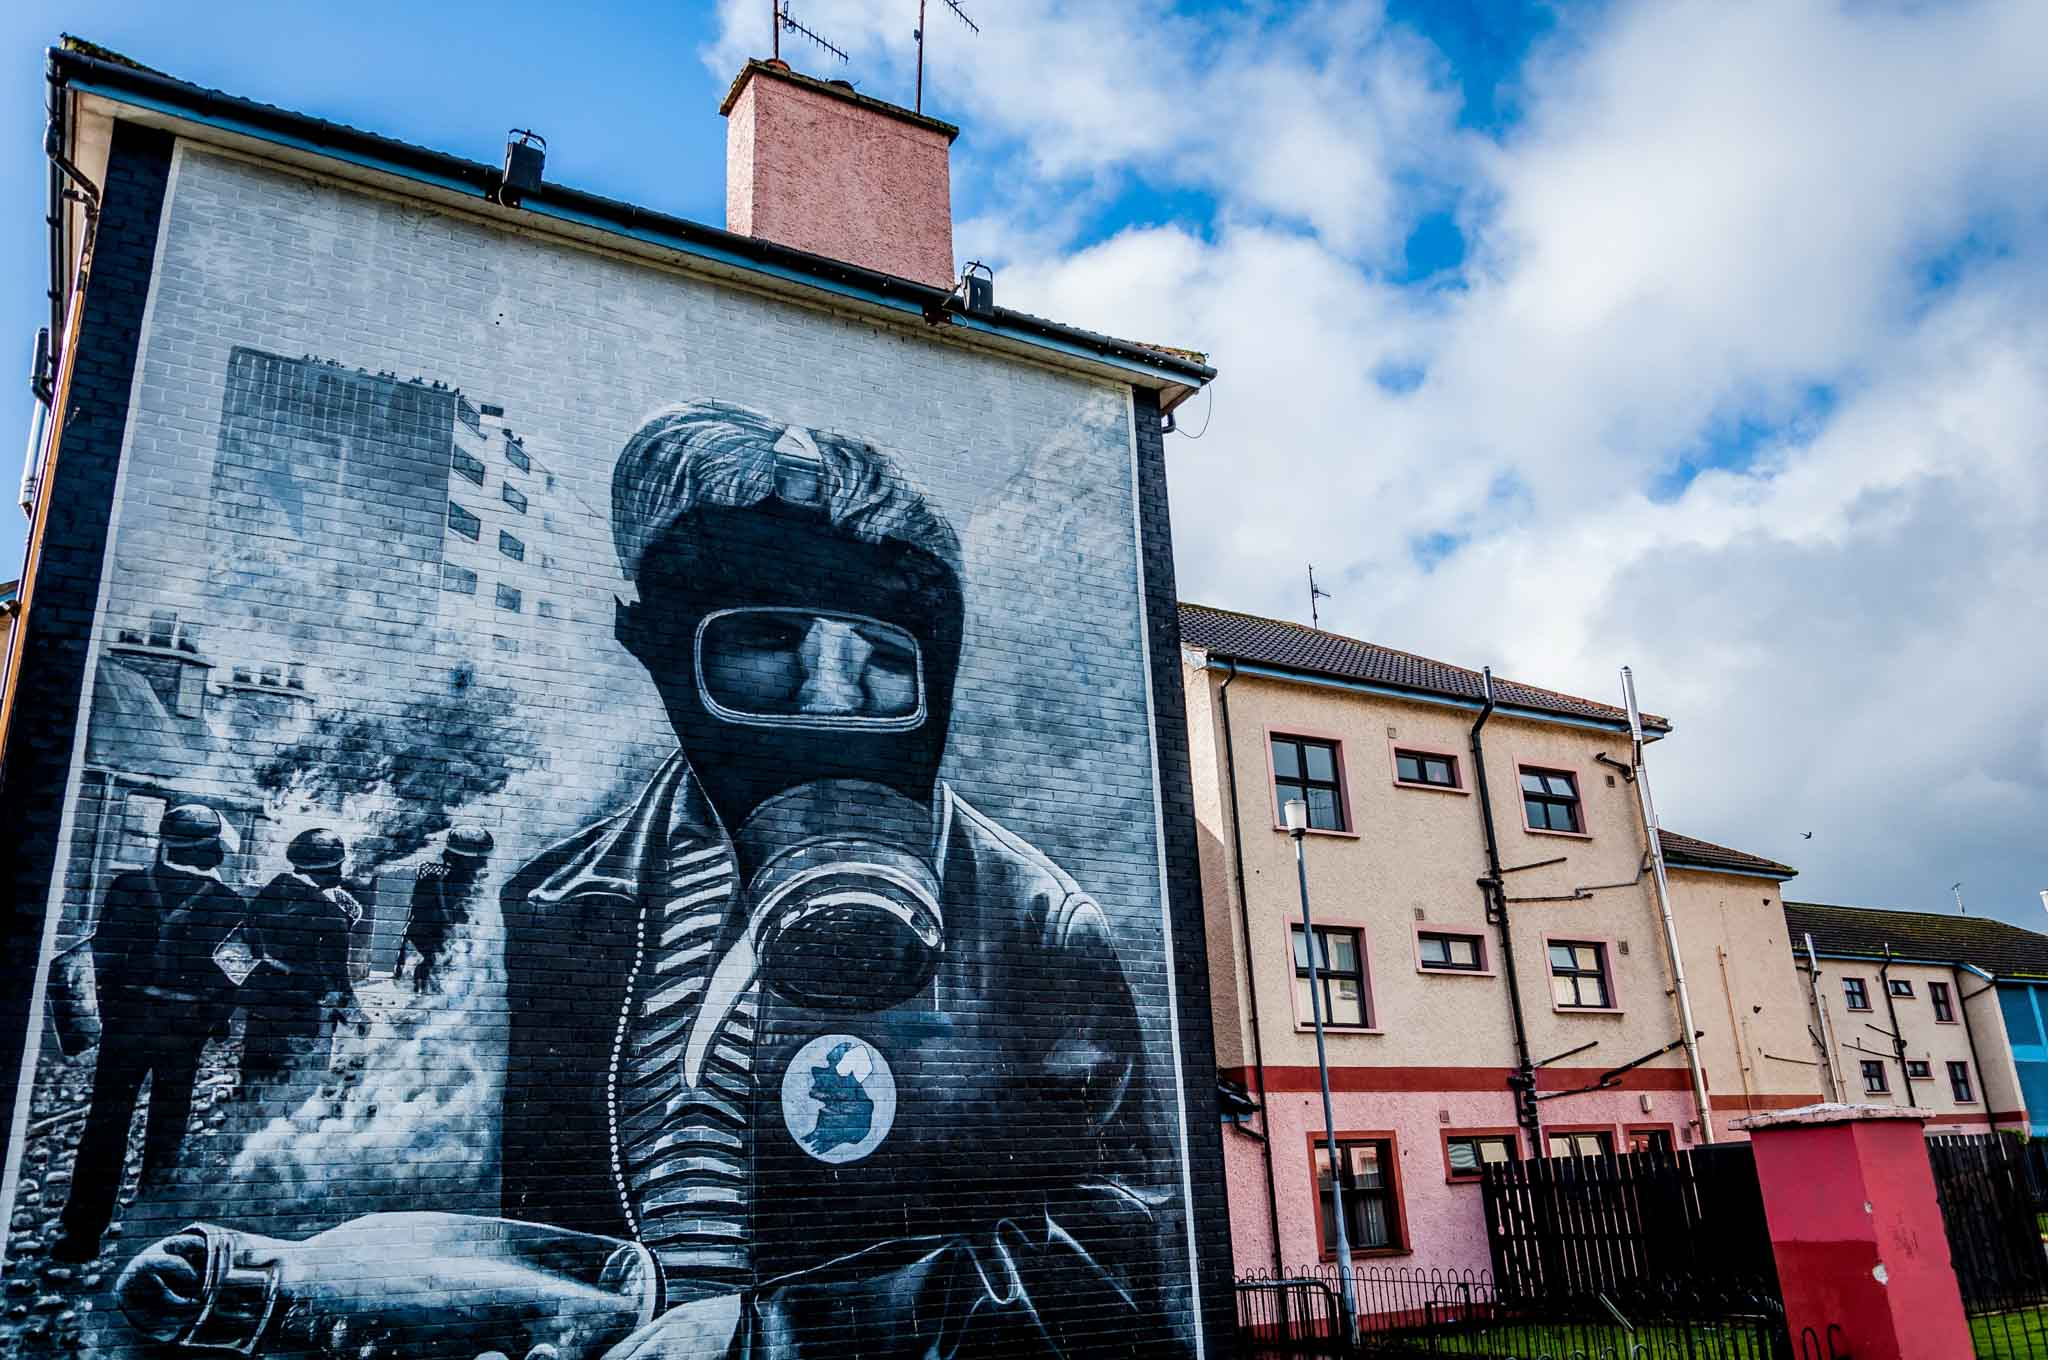 One of the Bloody Sunday Derry murals in Northern Ireland